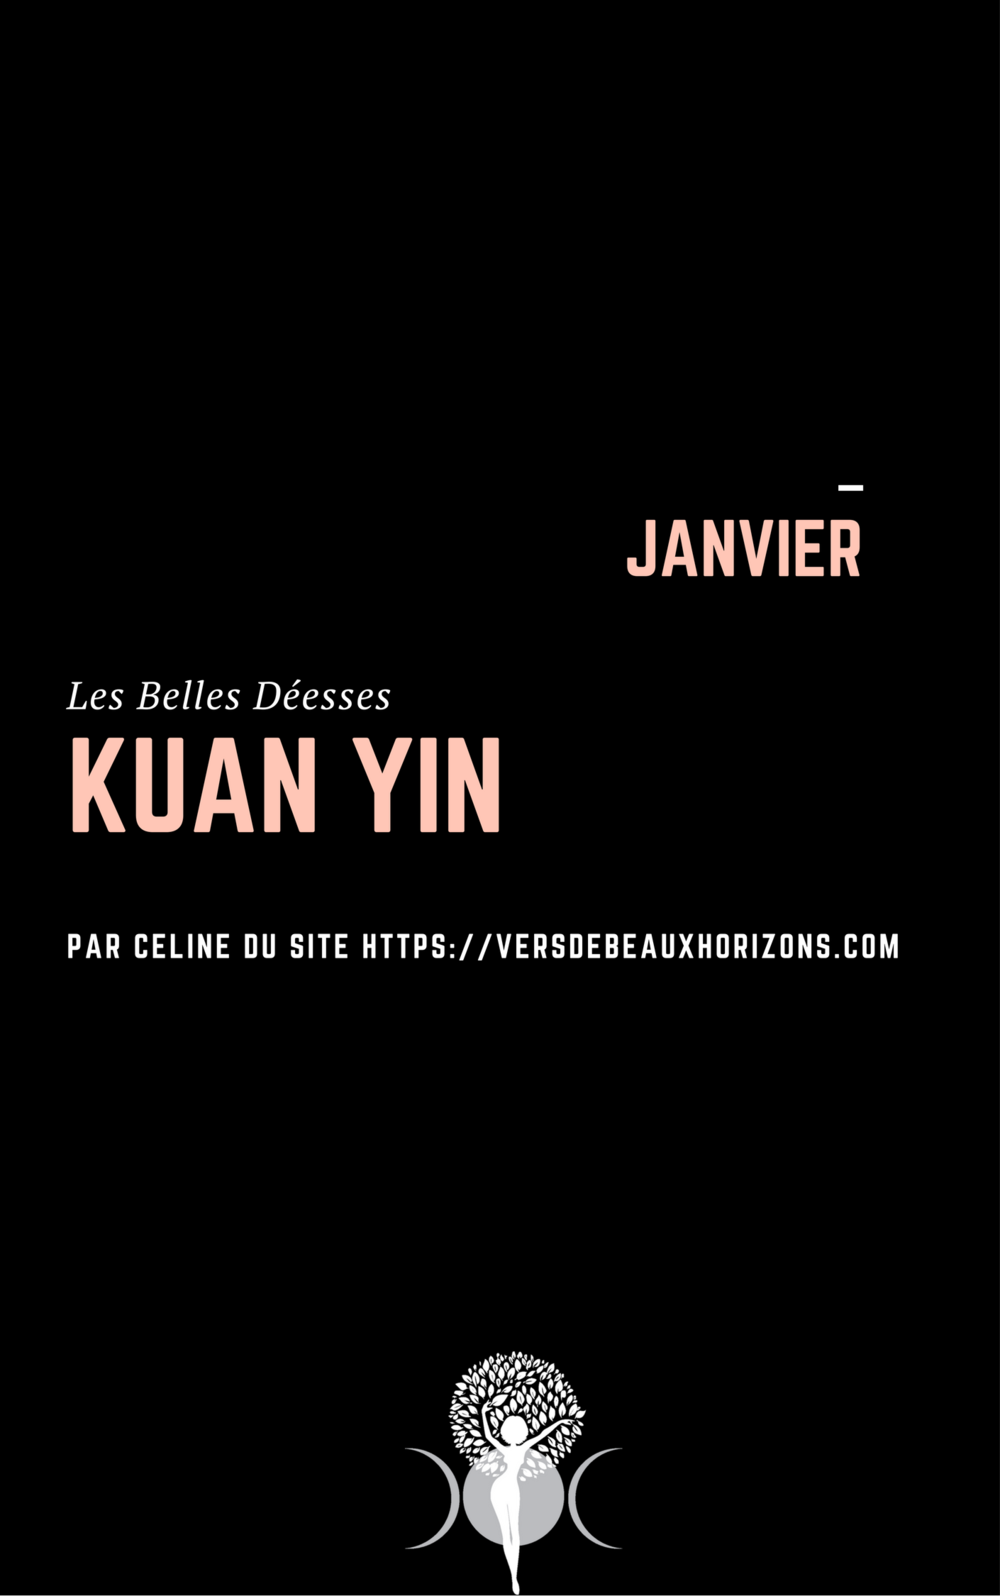 Kuan Yin_conference_format Pinterest.png